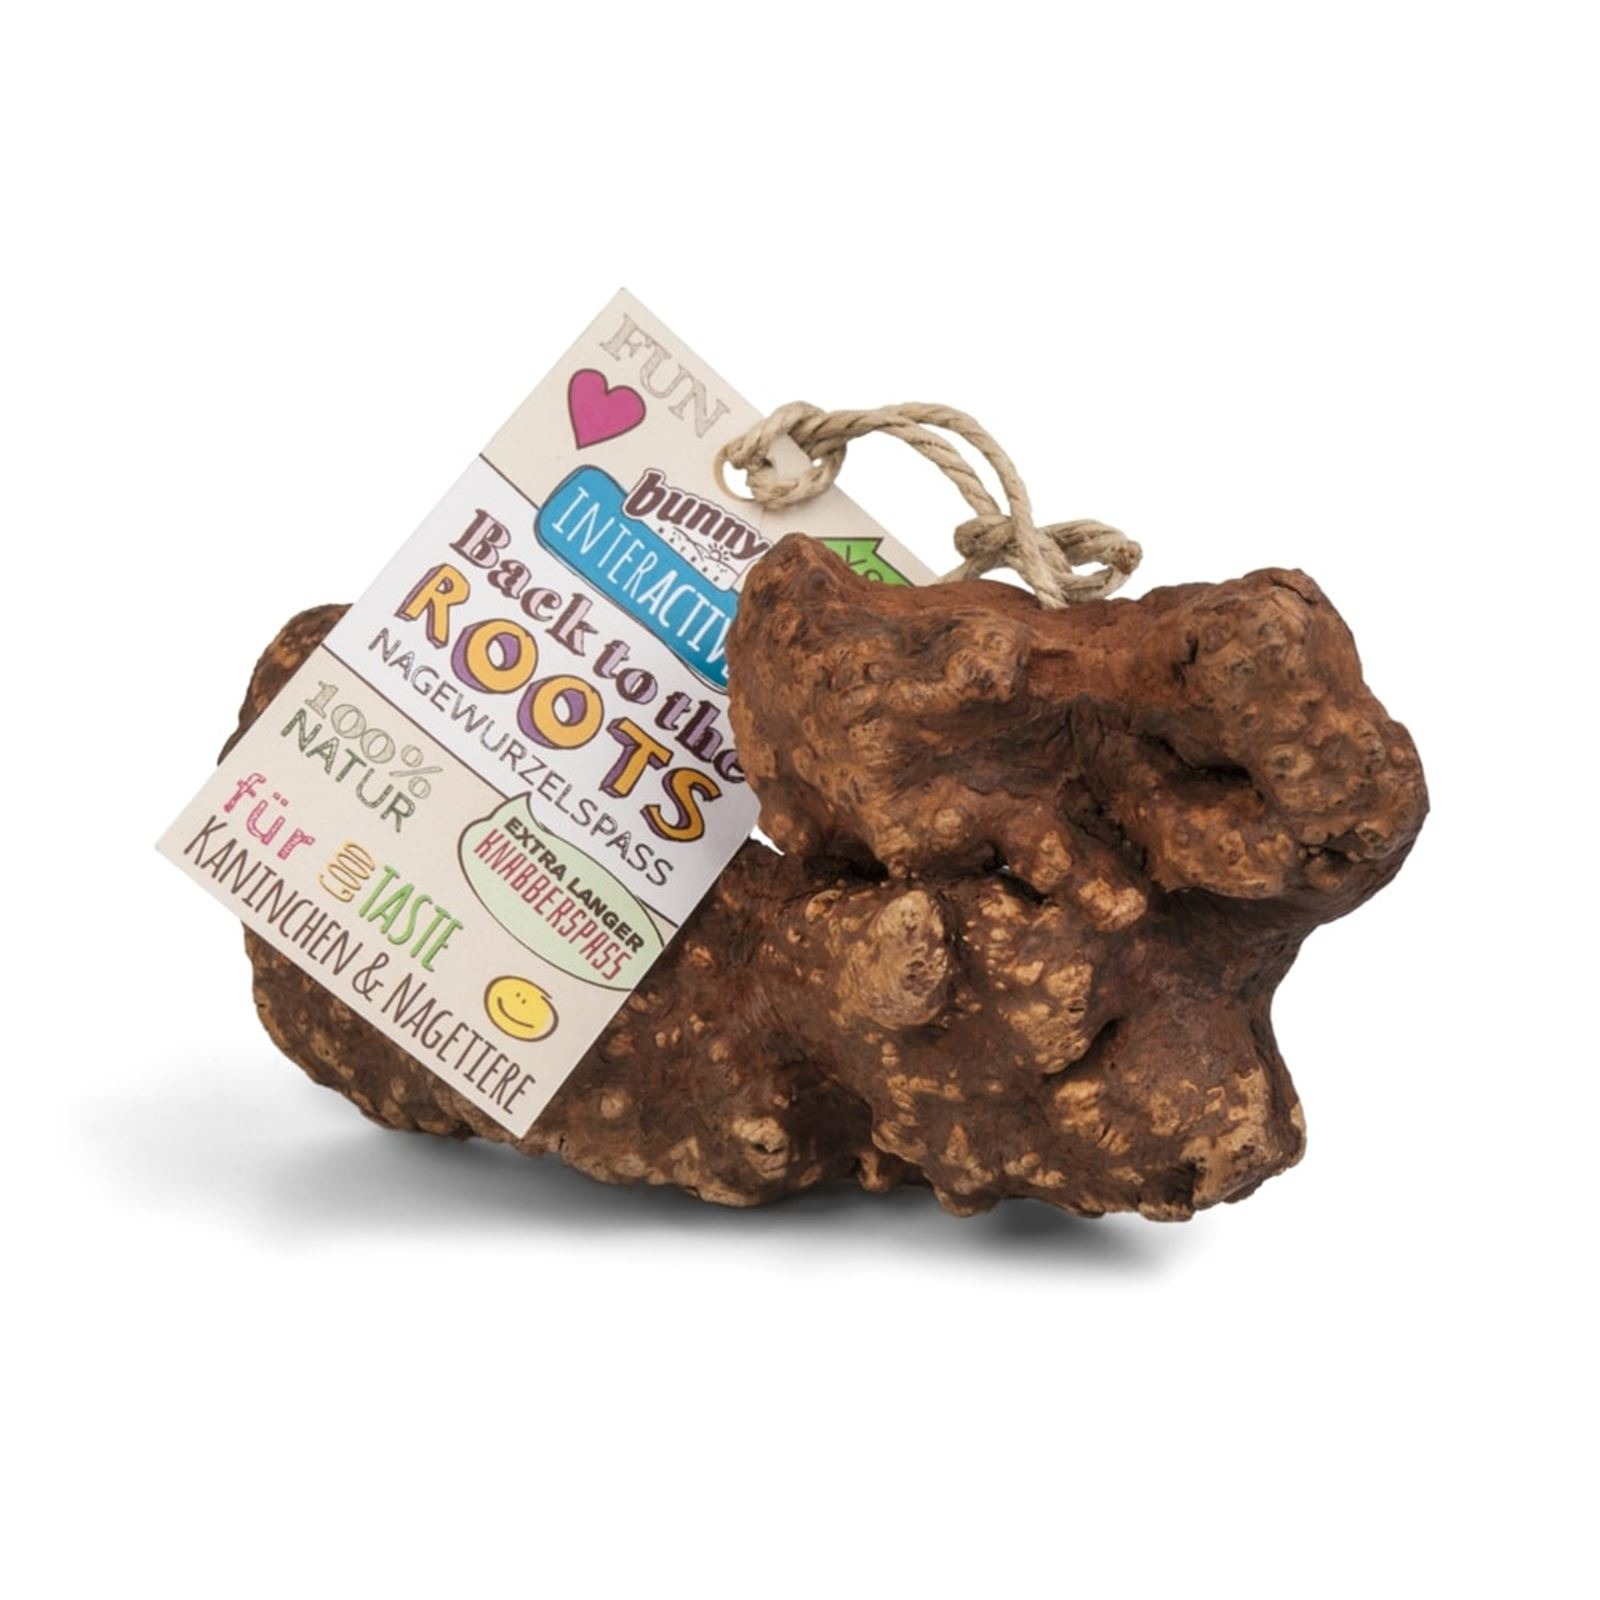 Bunny Nature Back To The Roots - Nibbling Root Fun S